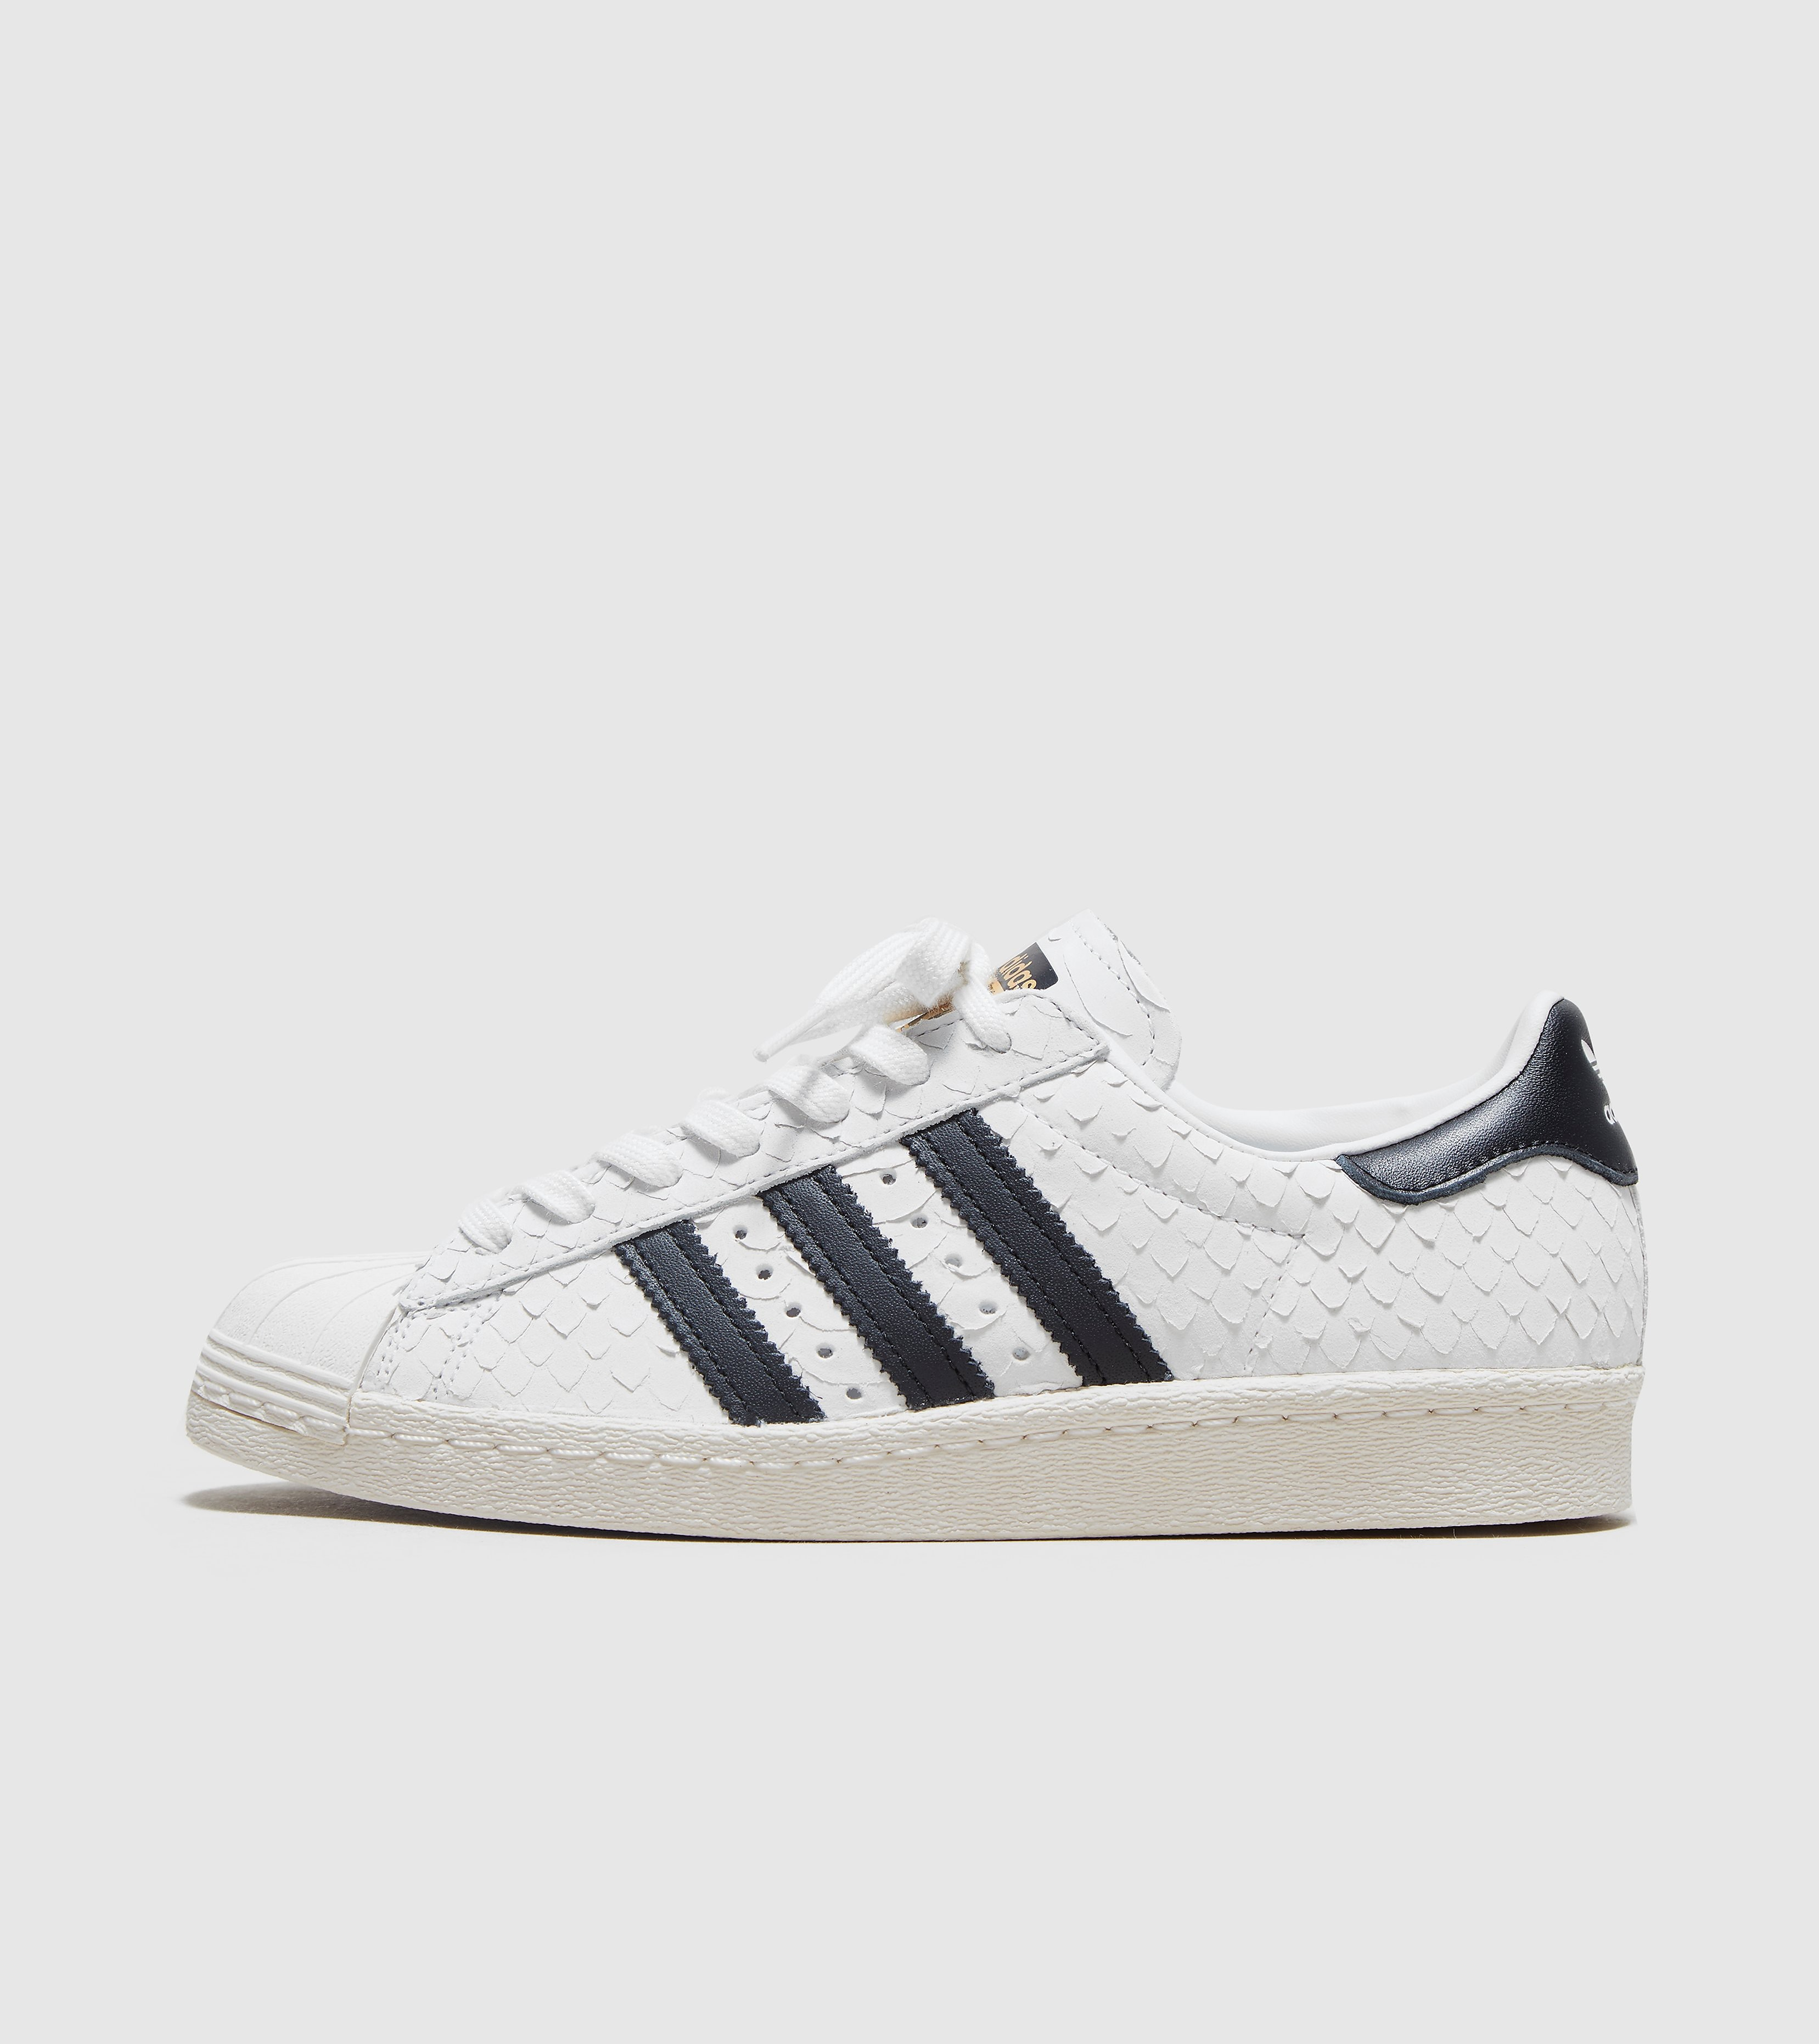 adidas Originals Superstar 80s Snake Women's